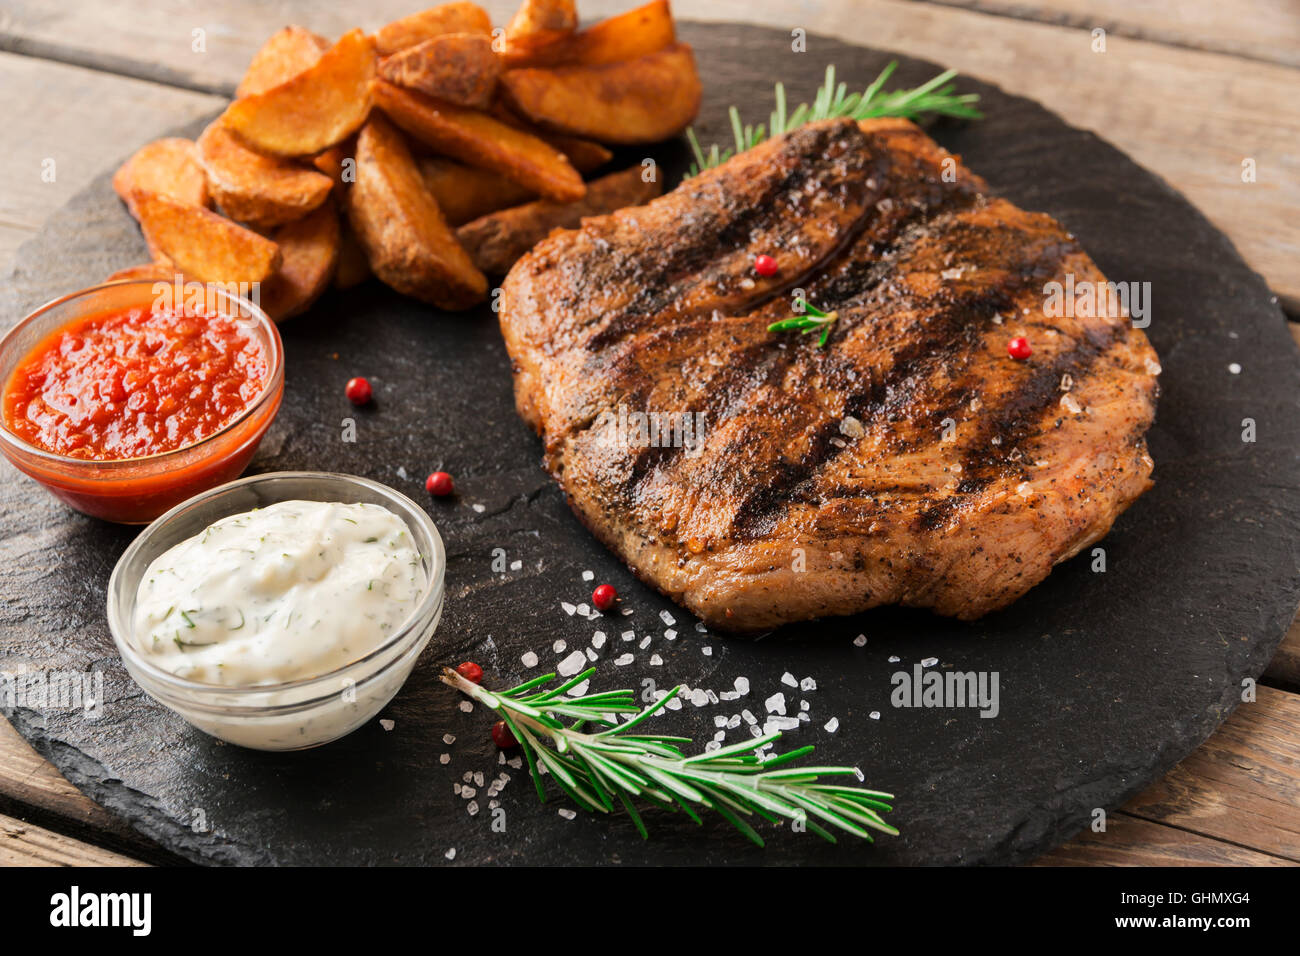 Beef steak with baked potato and sauce - Stock Image